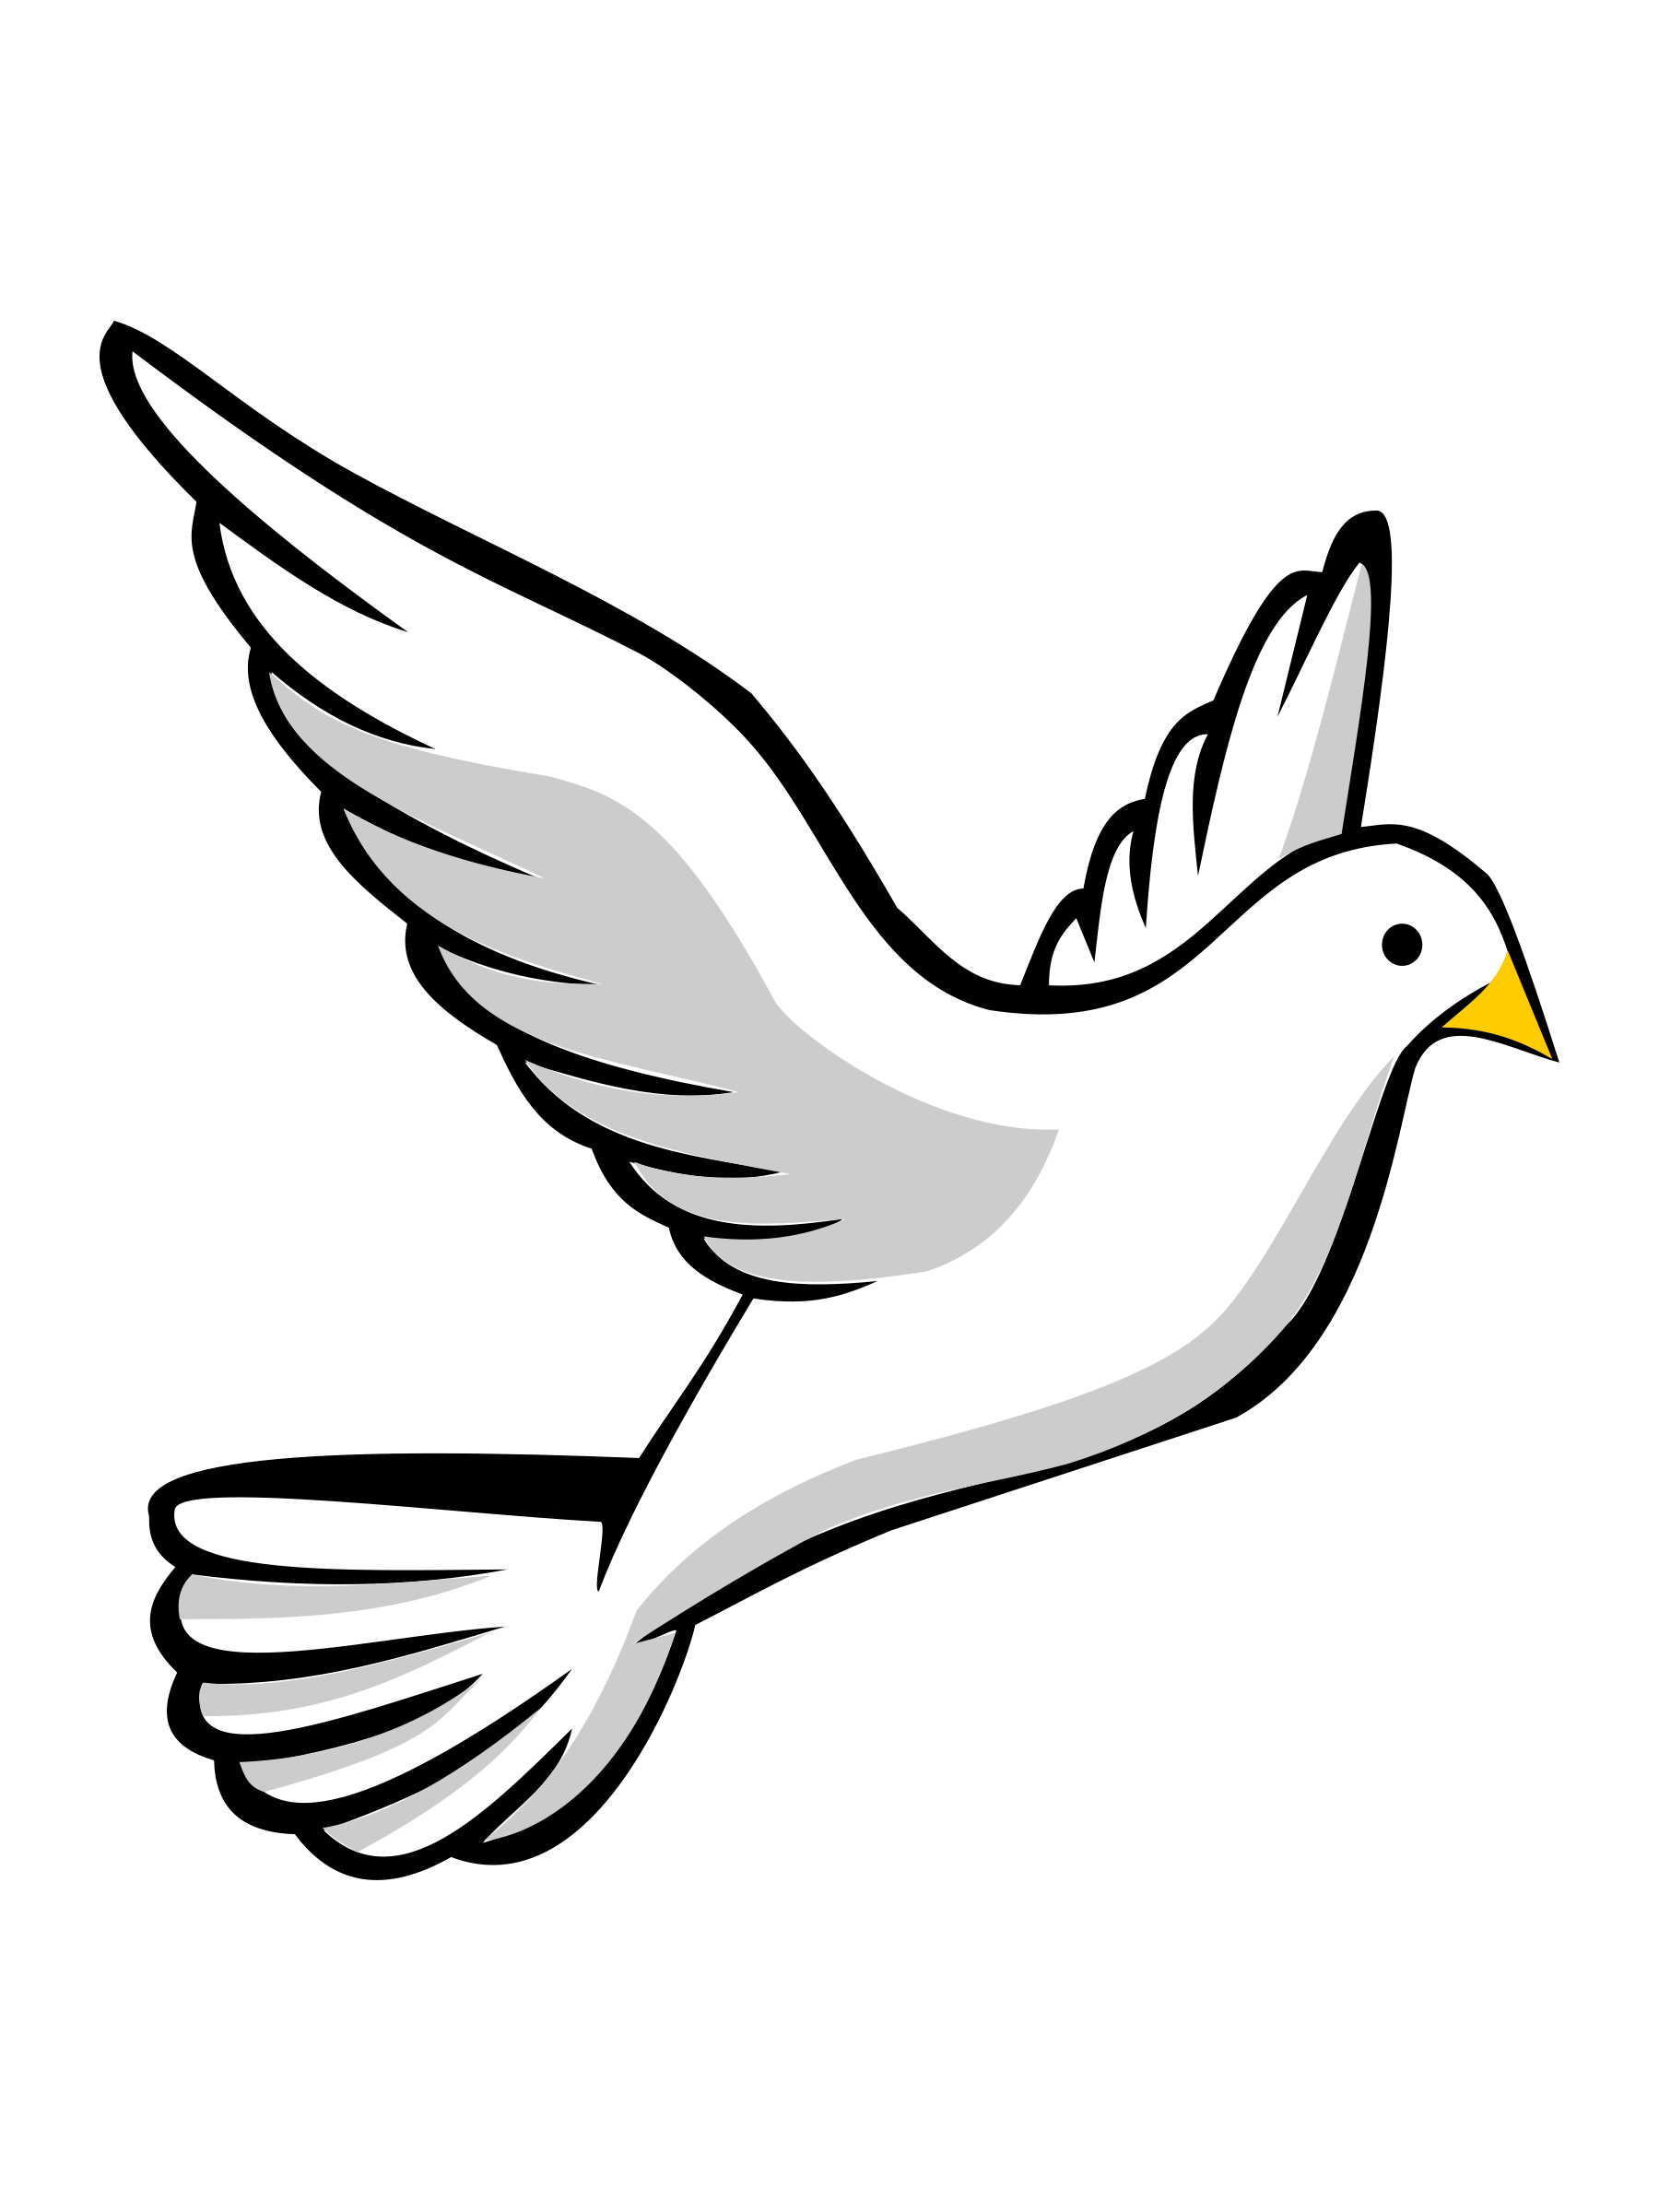 Christian dove png. Religious clip art confirmation